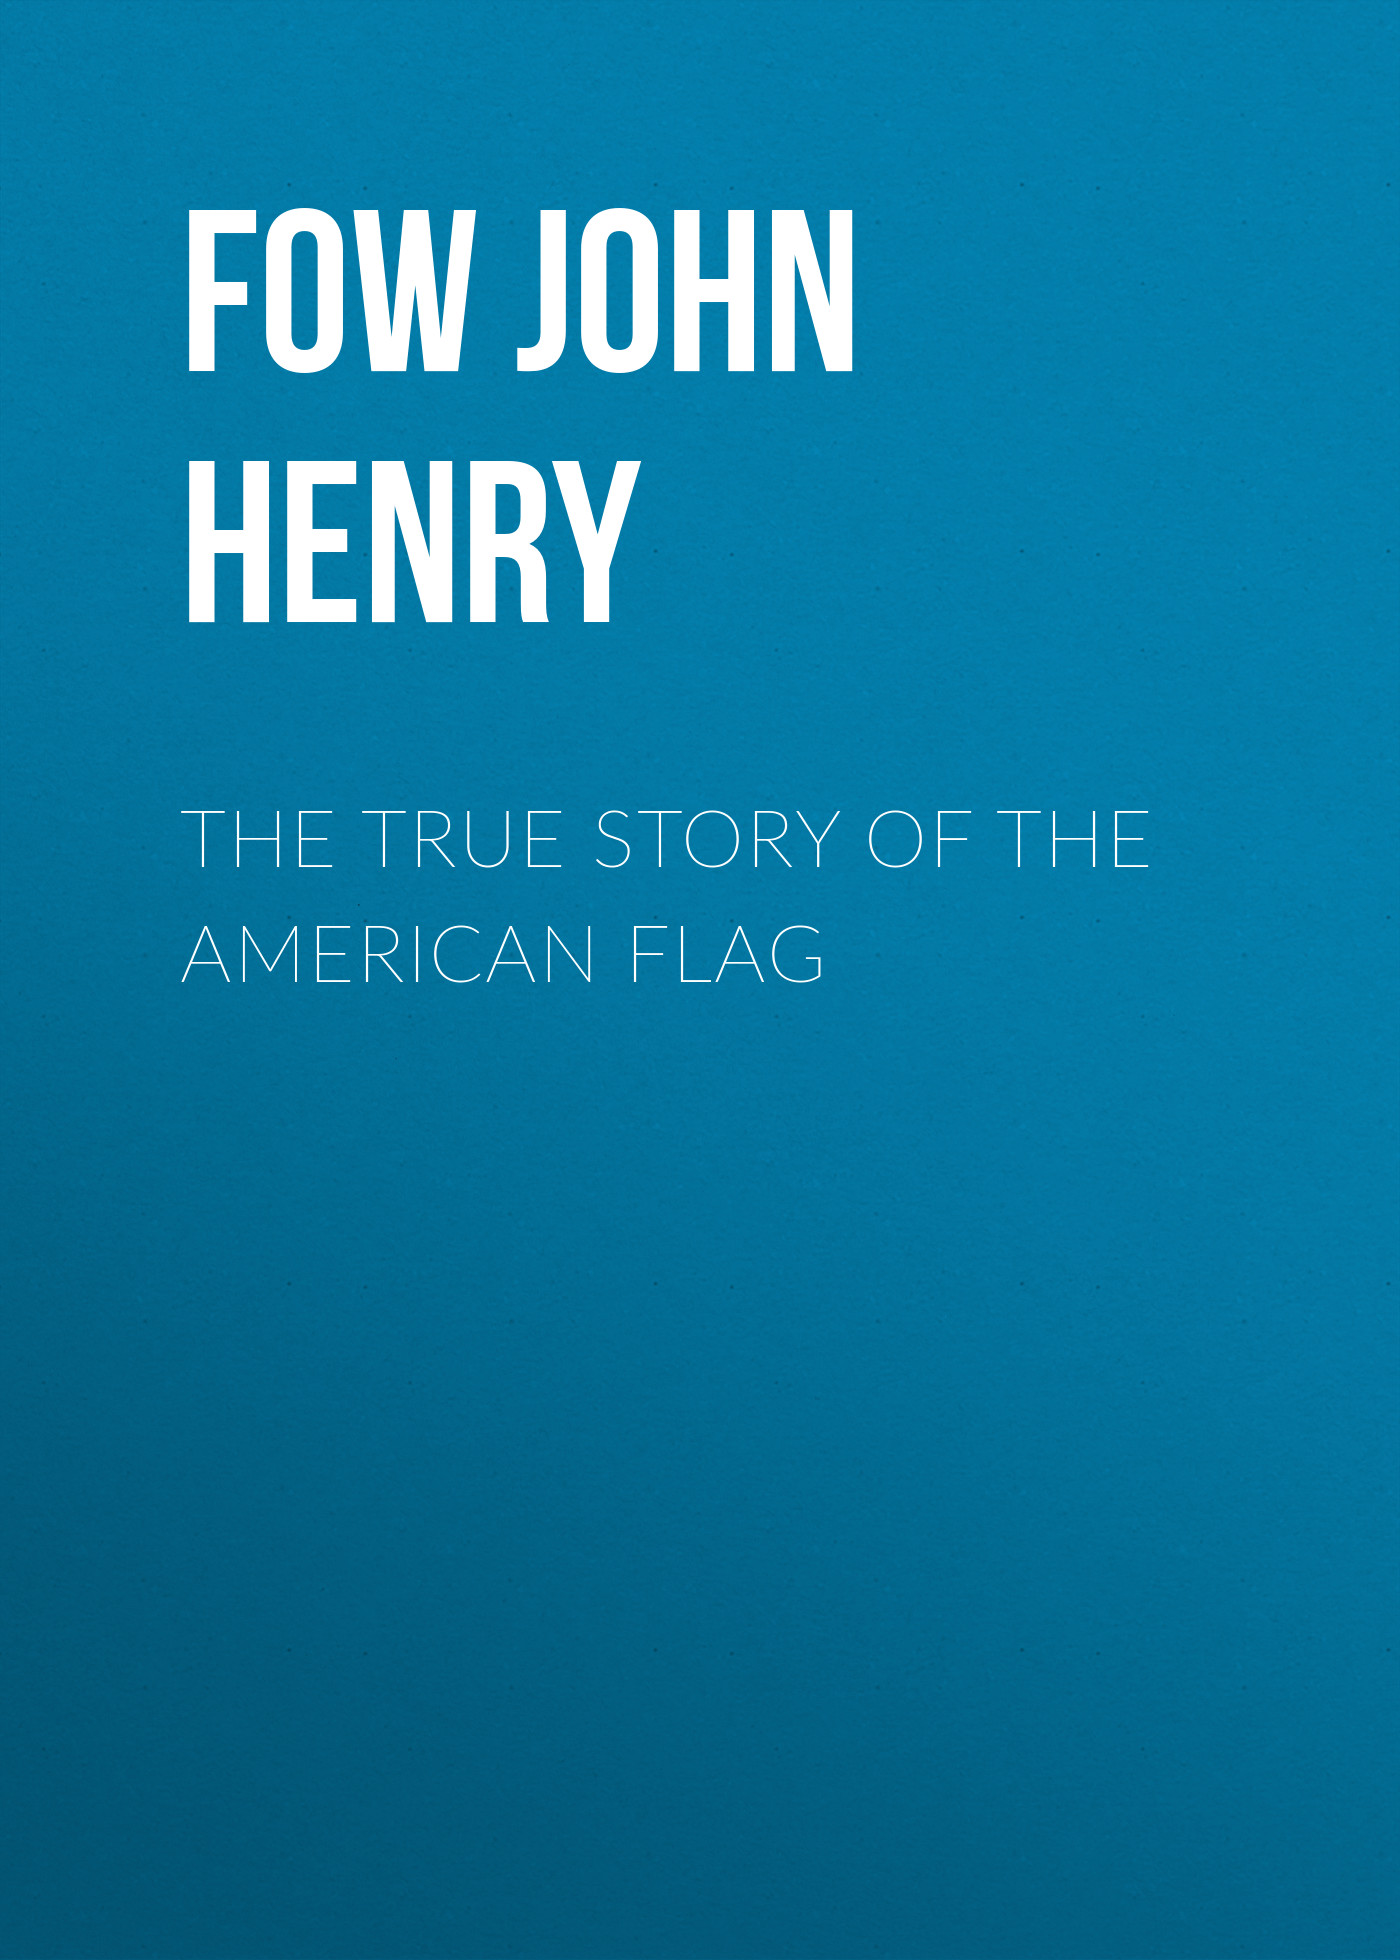 Fow John Henry The True Story of the American Flag